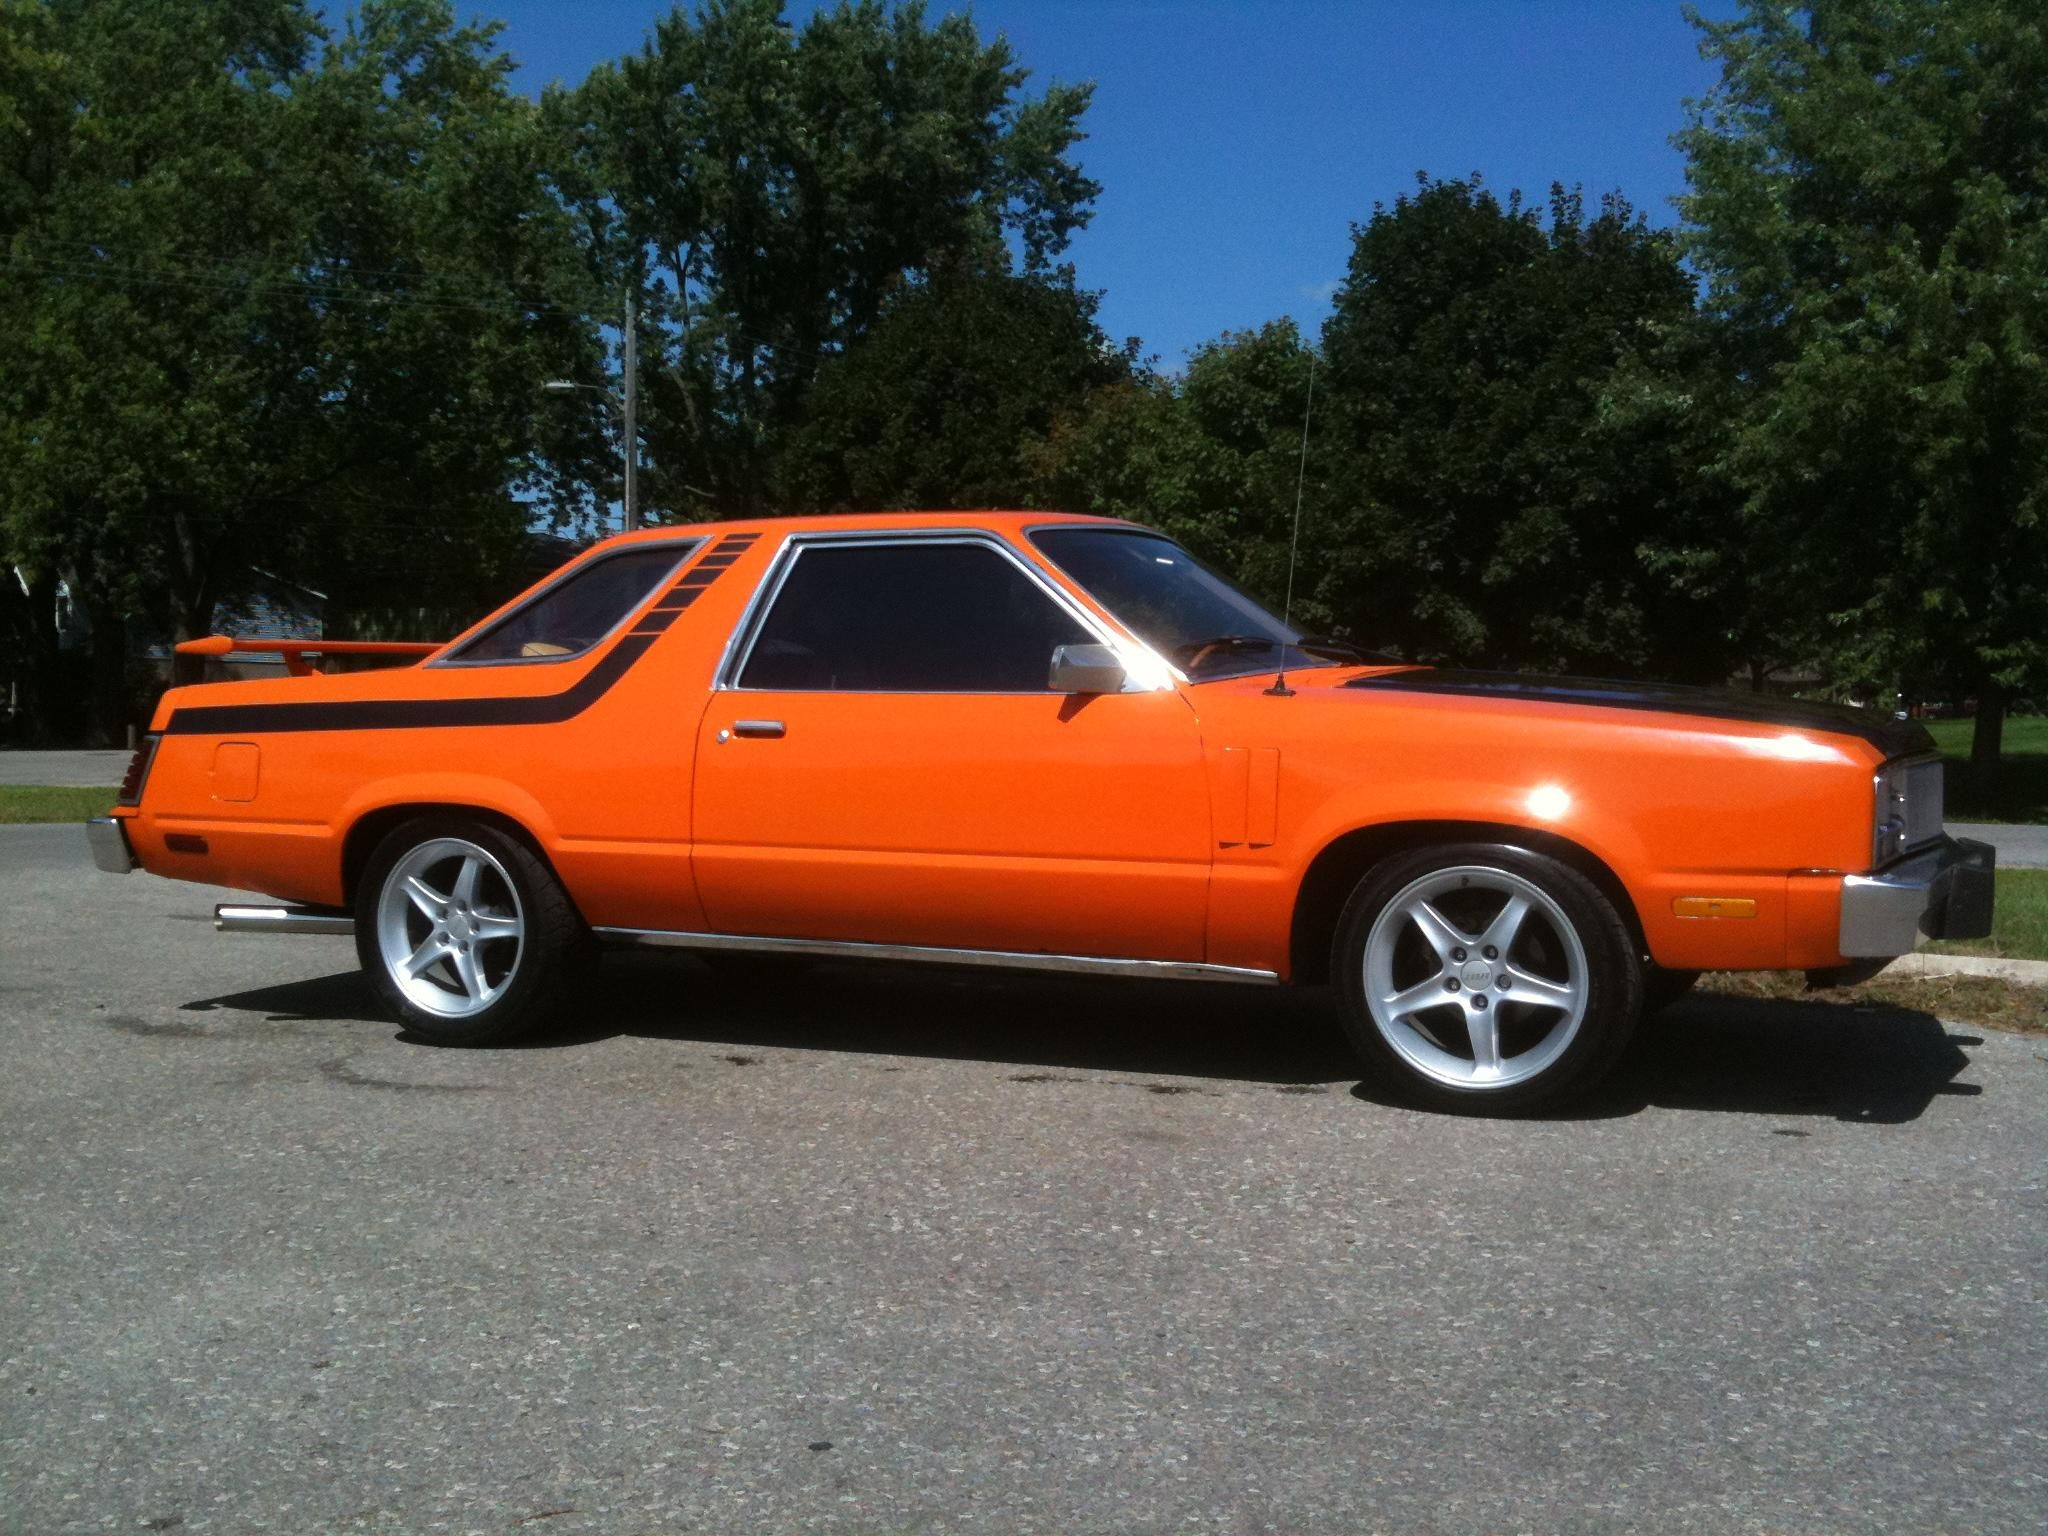 1978 Mercury Zephyr Hot Rods Cars Muscle Zephyr Ford Motor Company